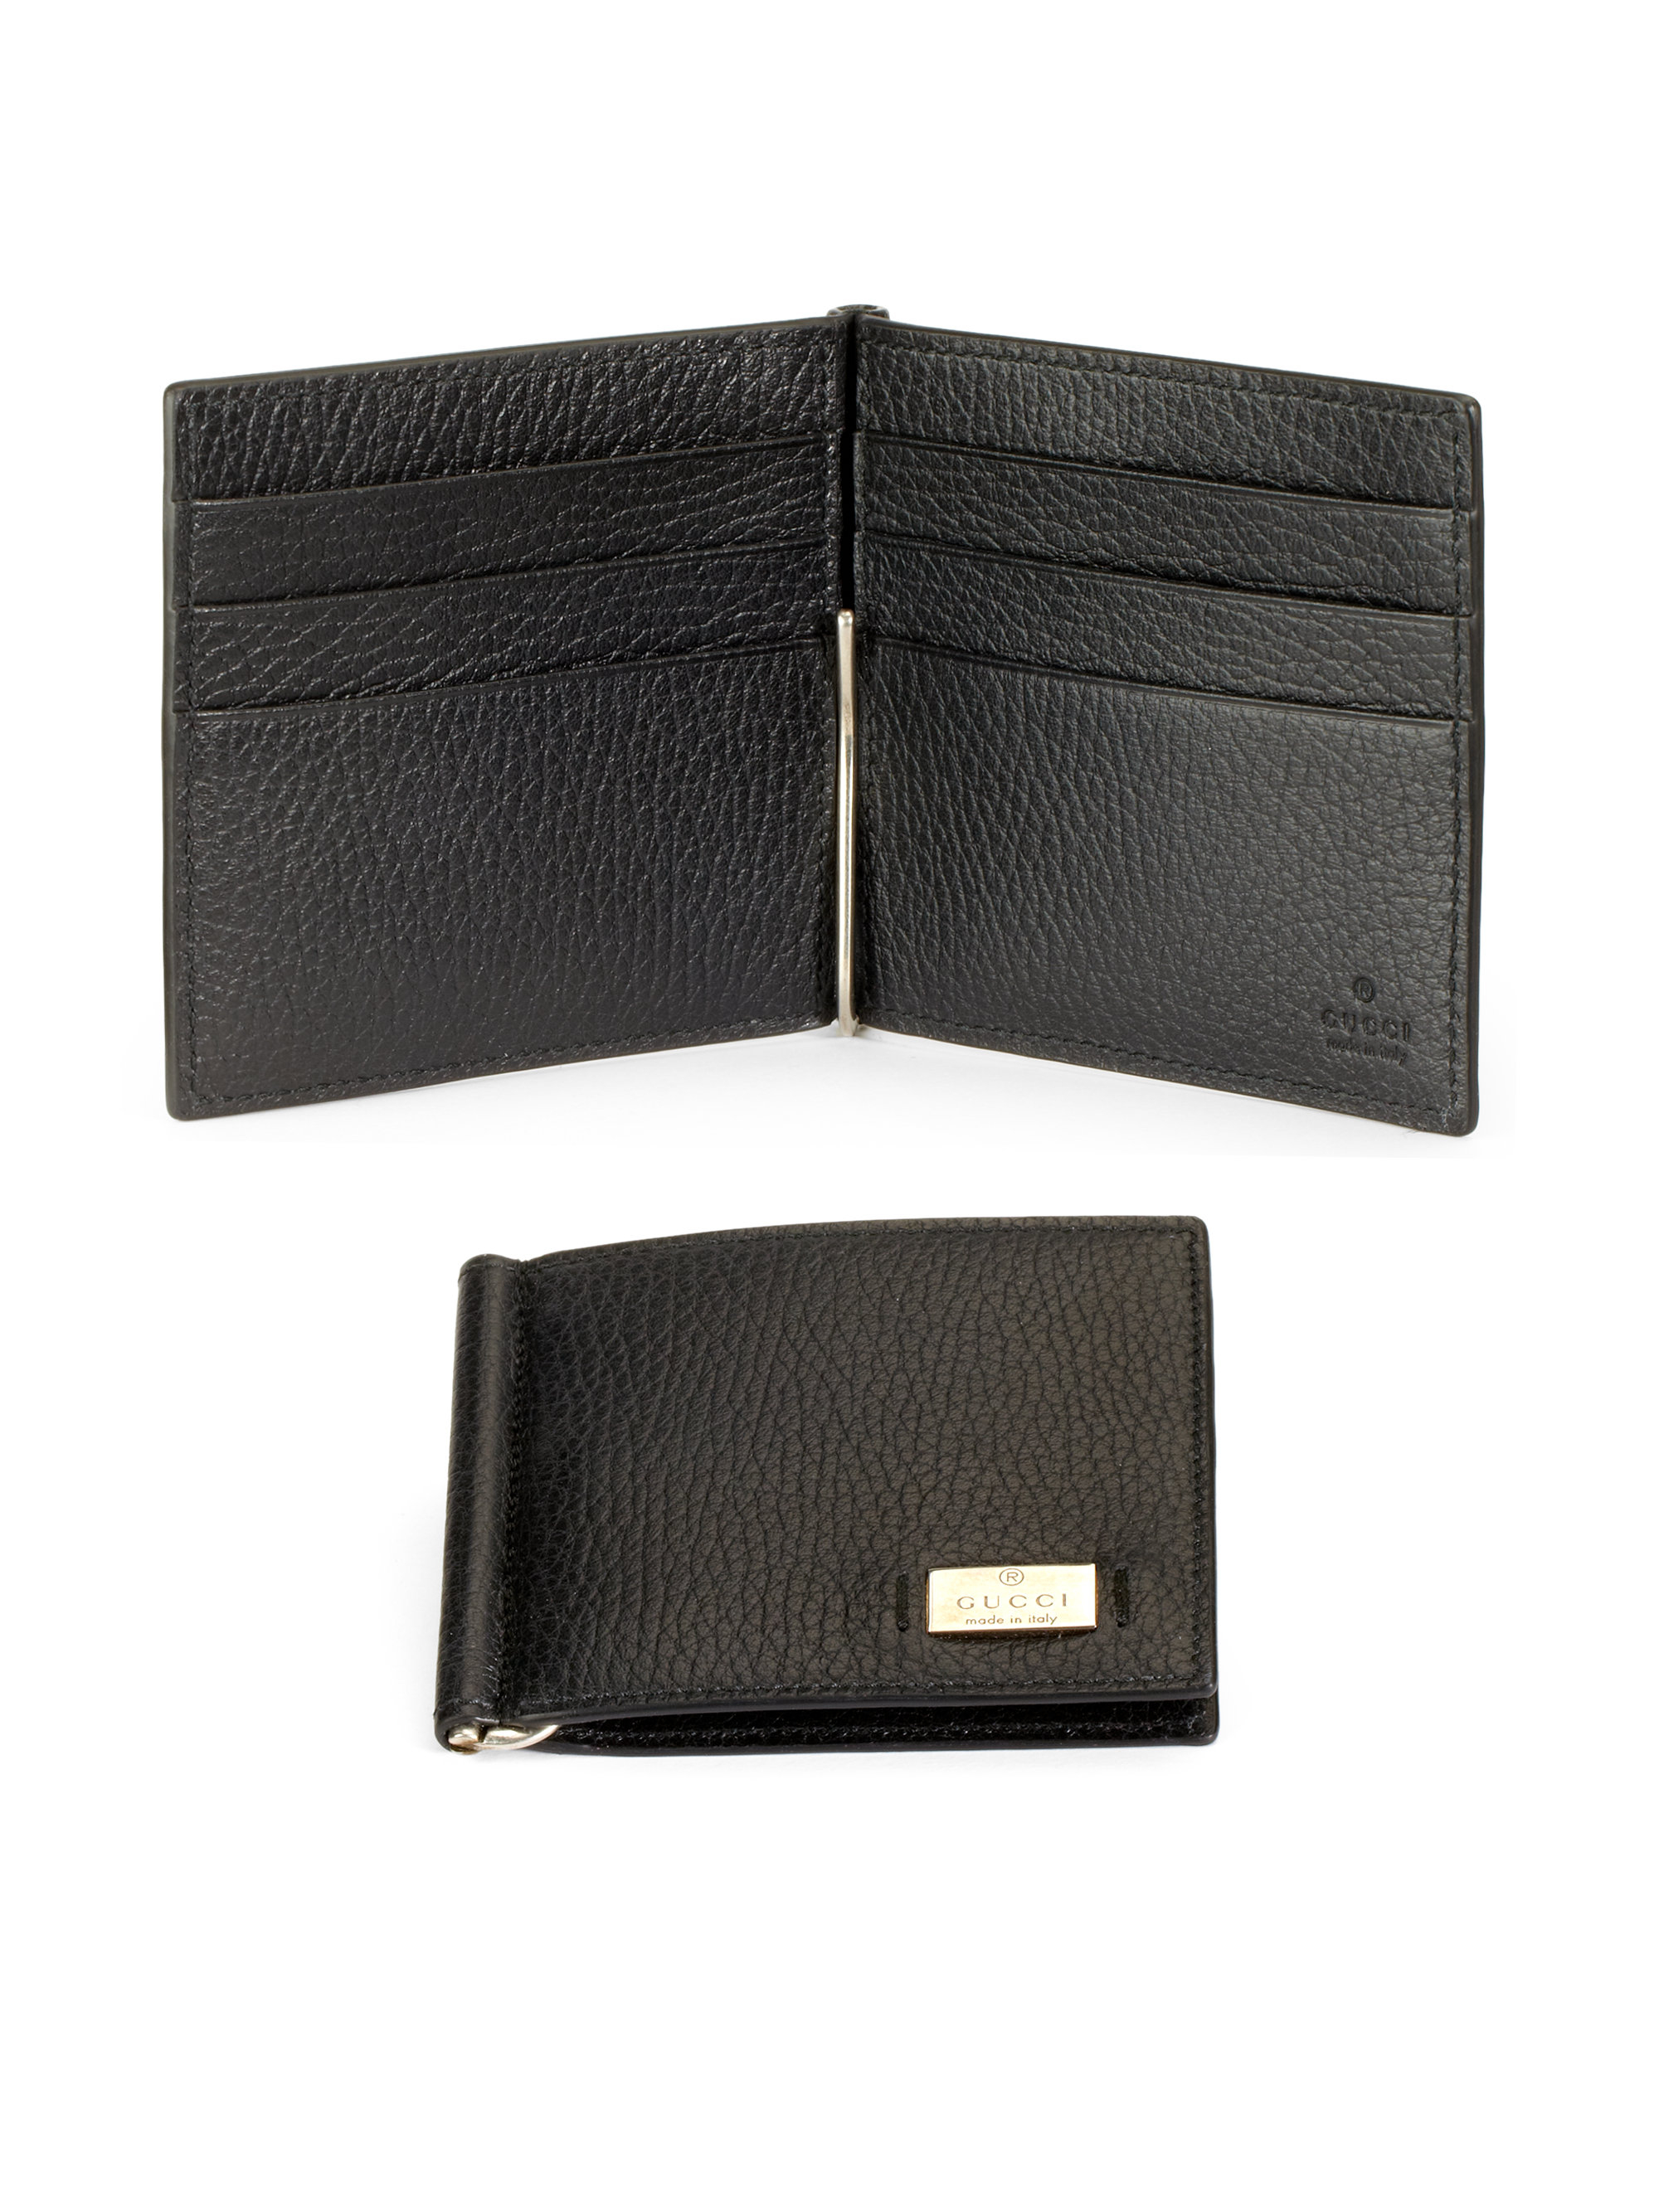 400fff58d95f Gucci Leather Money Clip Wallet in Black for Men - Lyst